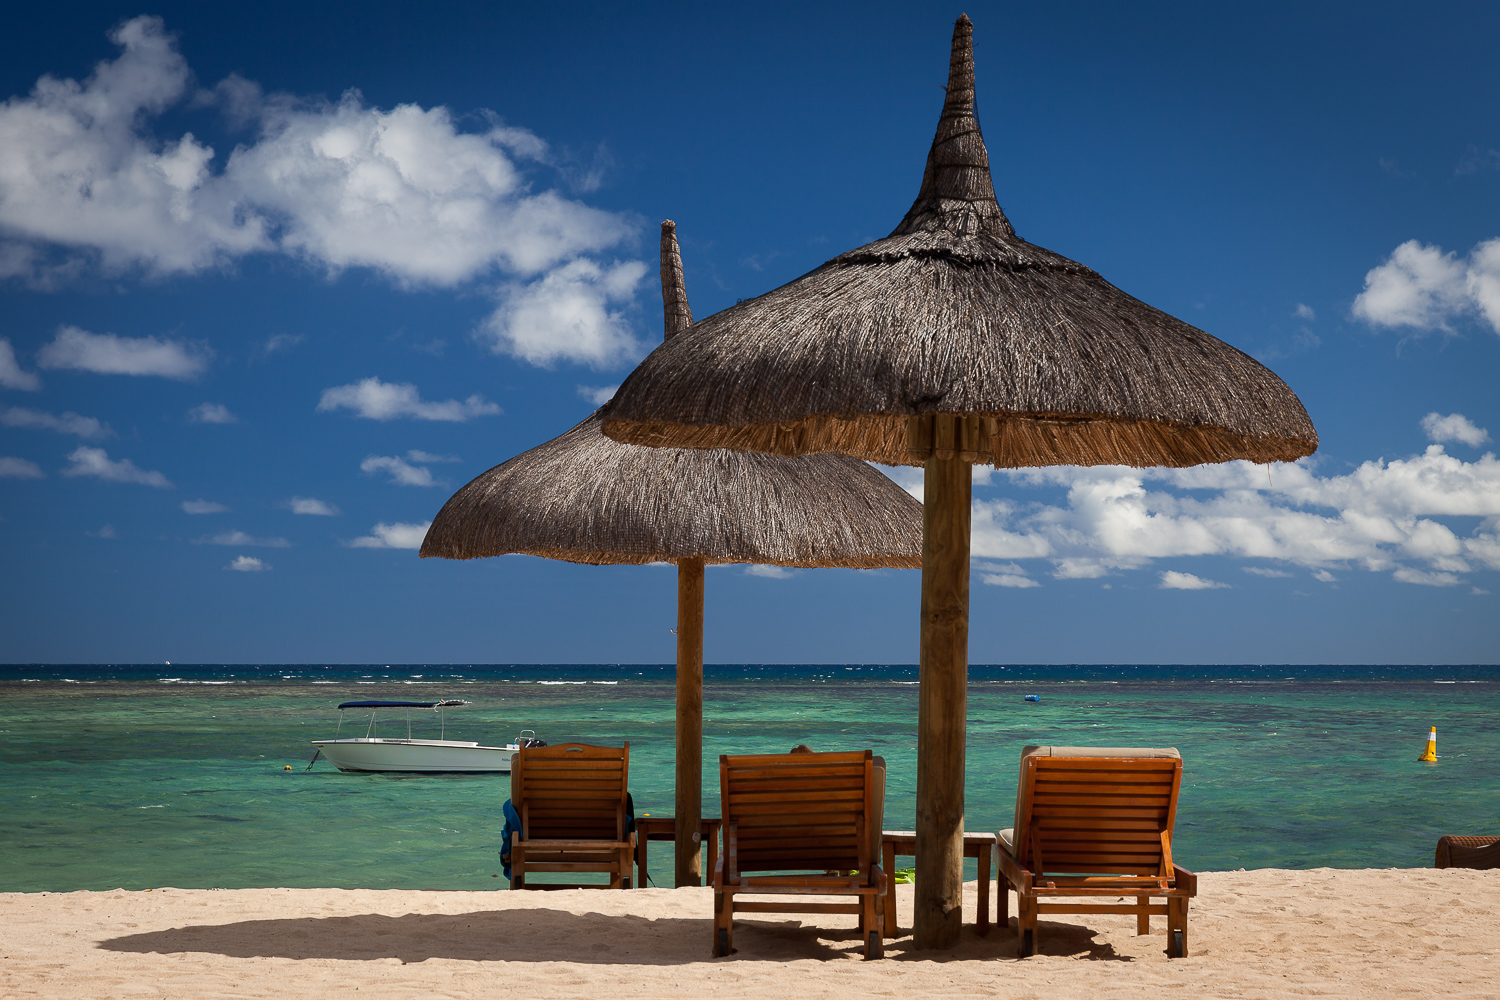 Tourism is a valuable source of foreign exchange for Mauritius